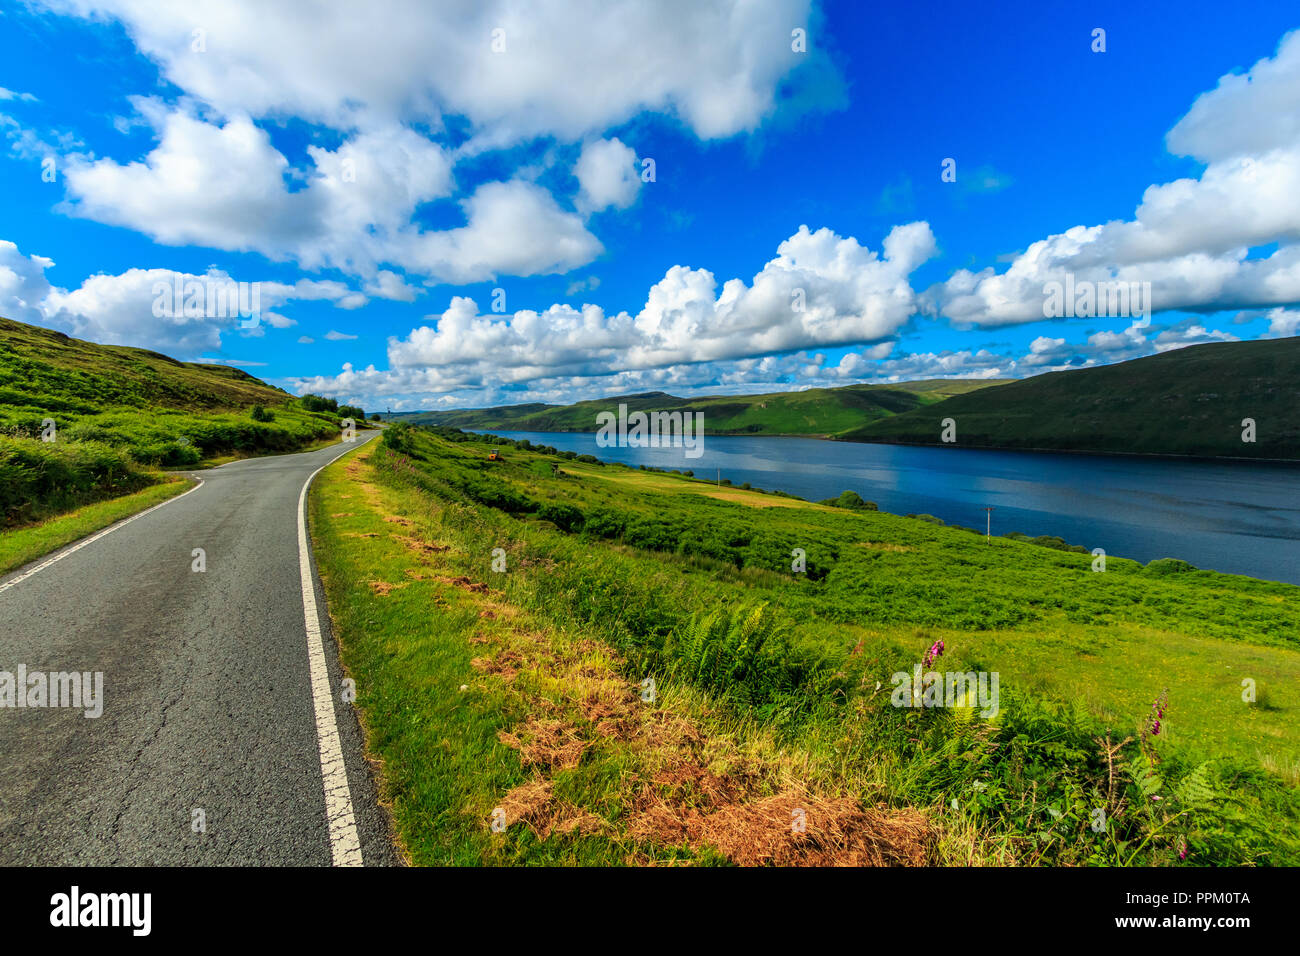 Road Leading Nowhere by a Lake Under a Beautiful Clear Sky With Grass Swaying In The Wind - Stock Image